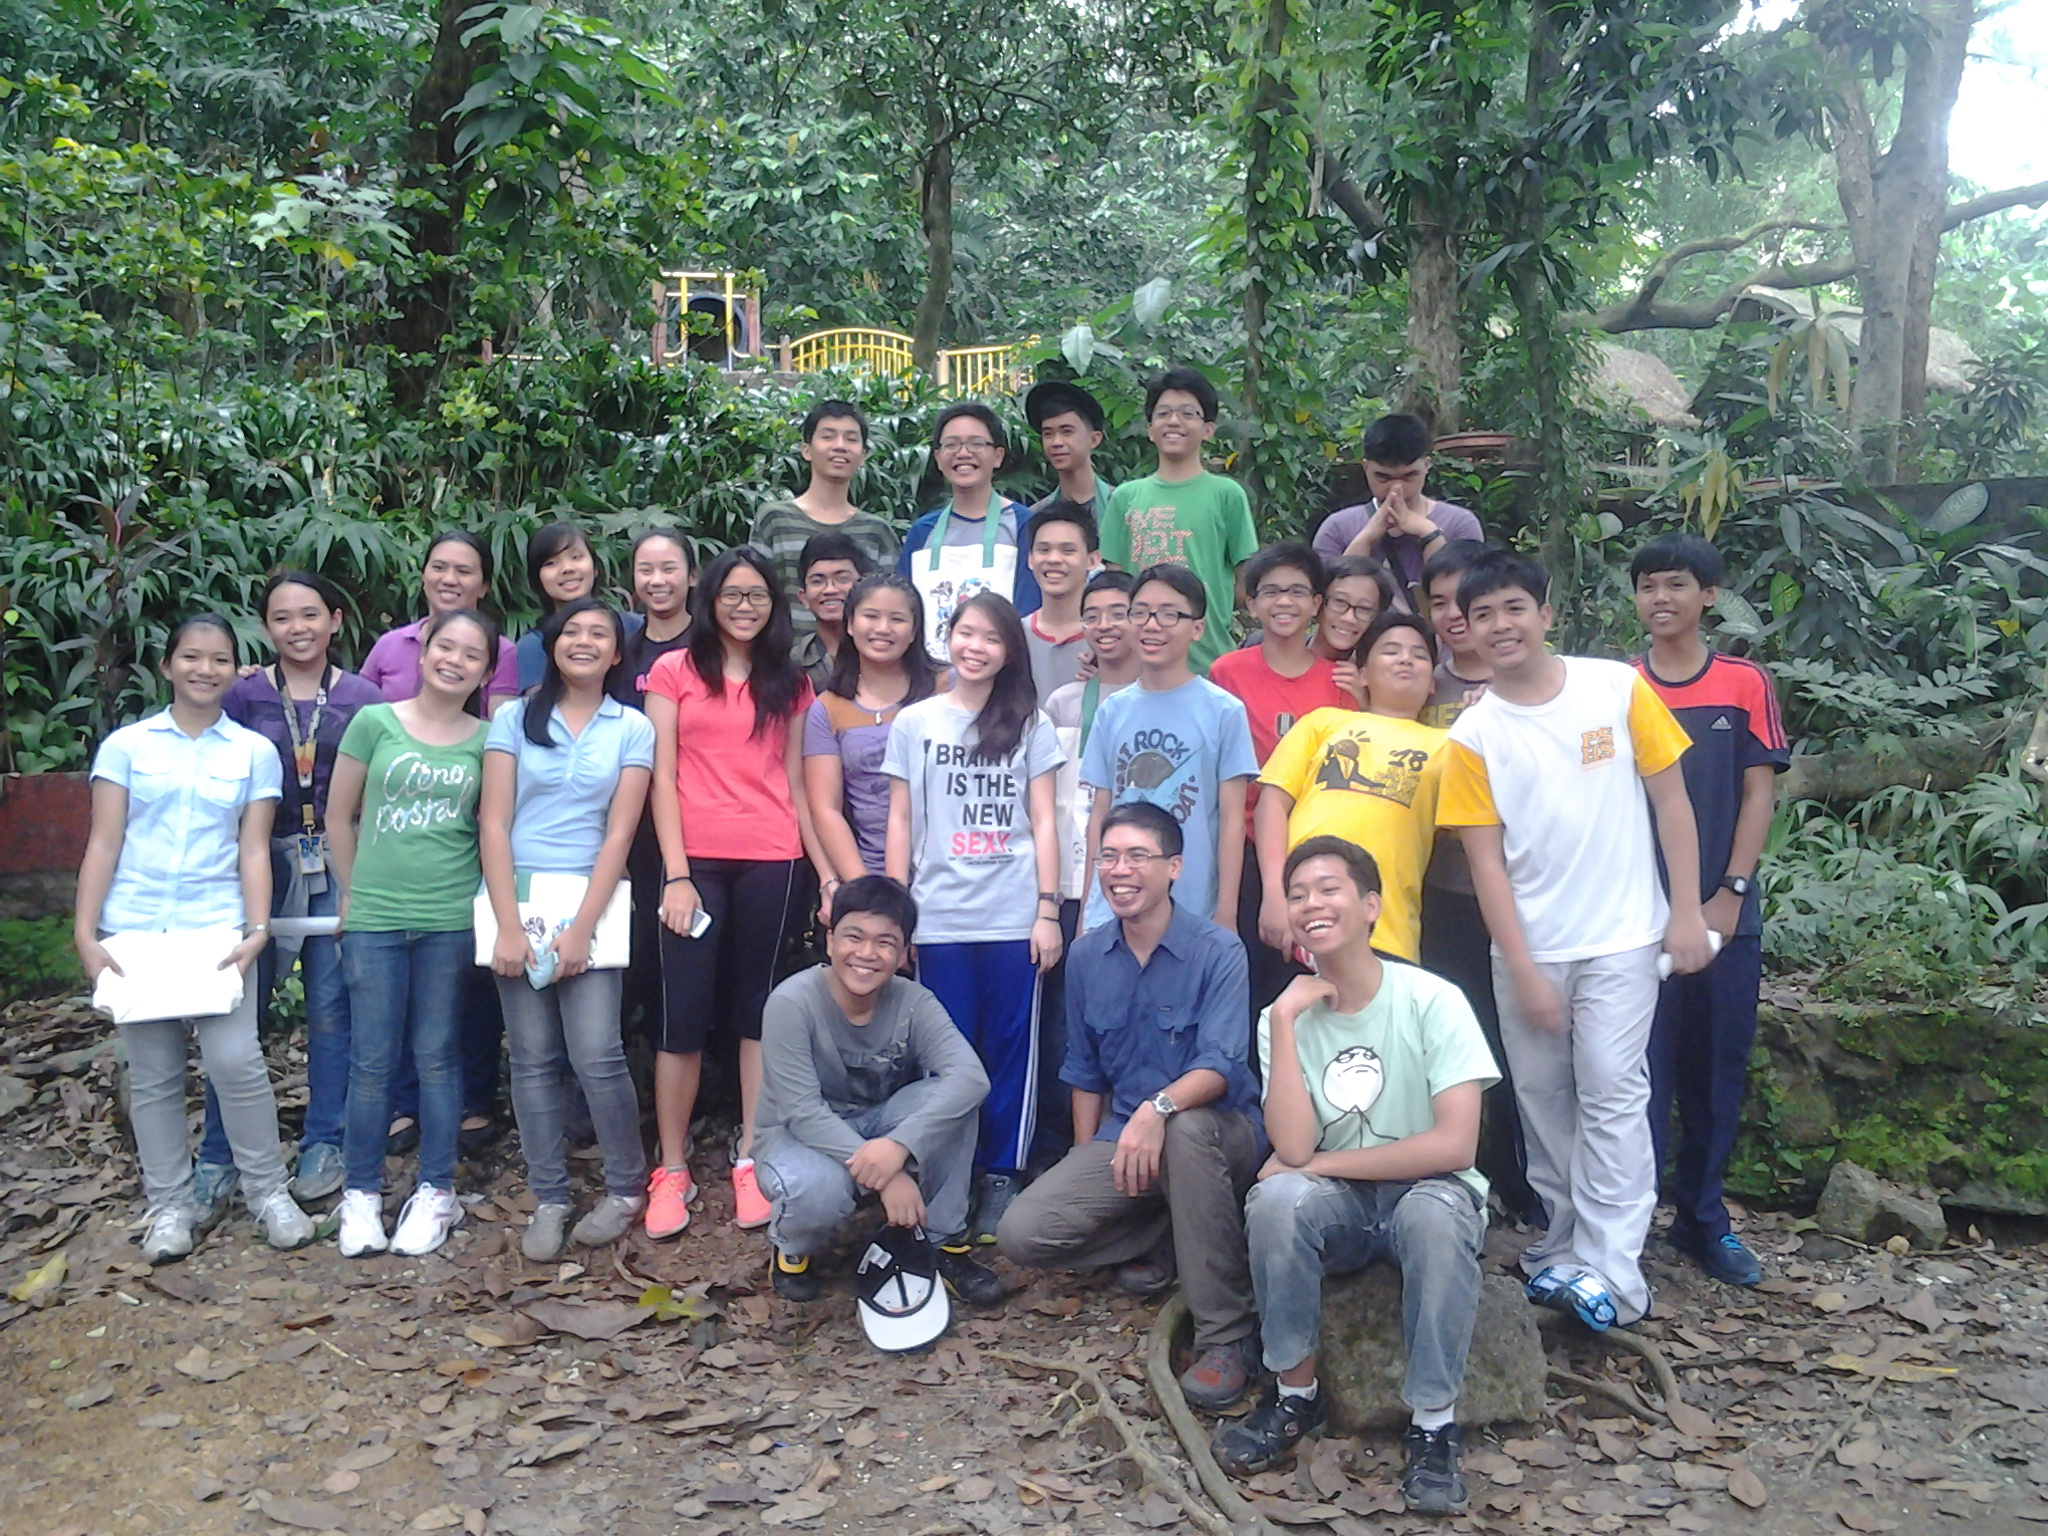 WBCP Secretary Jon Javier posing with his advisory class after the bird race. Photo by Maia Tanedo